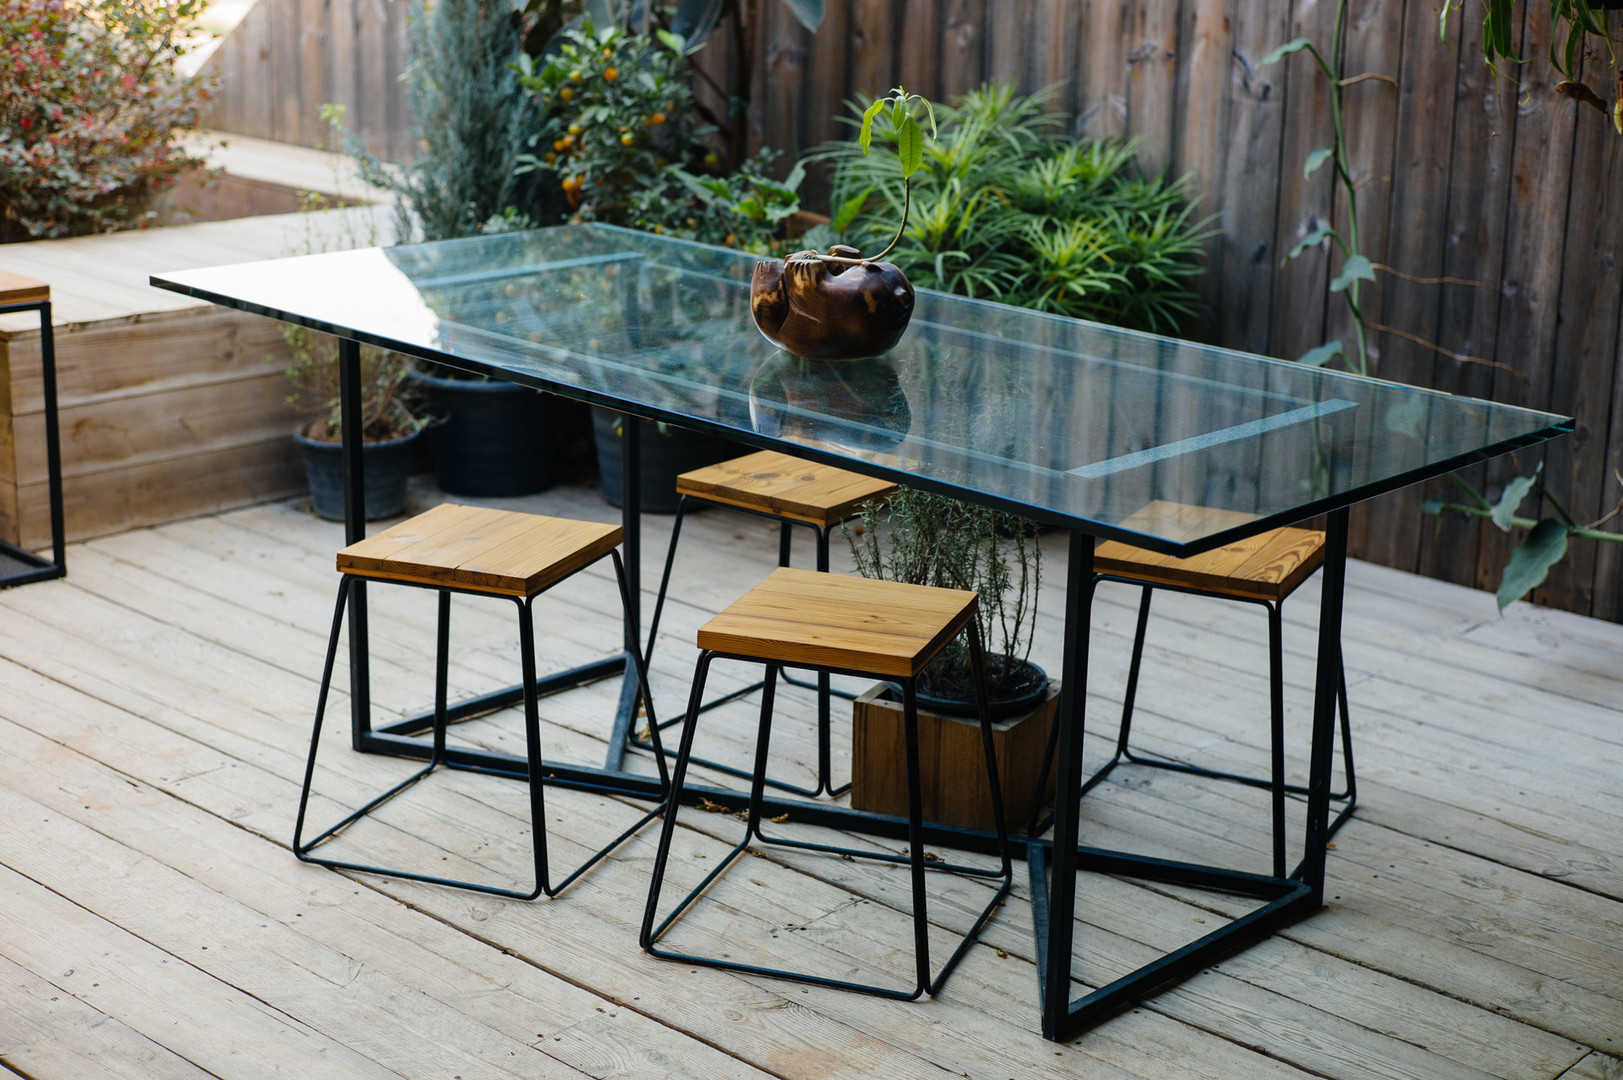 glass-table-in-a-cafe-GH5LSAT.jpg